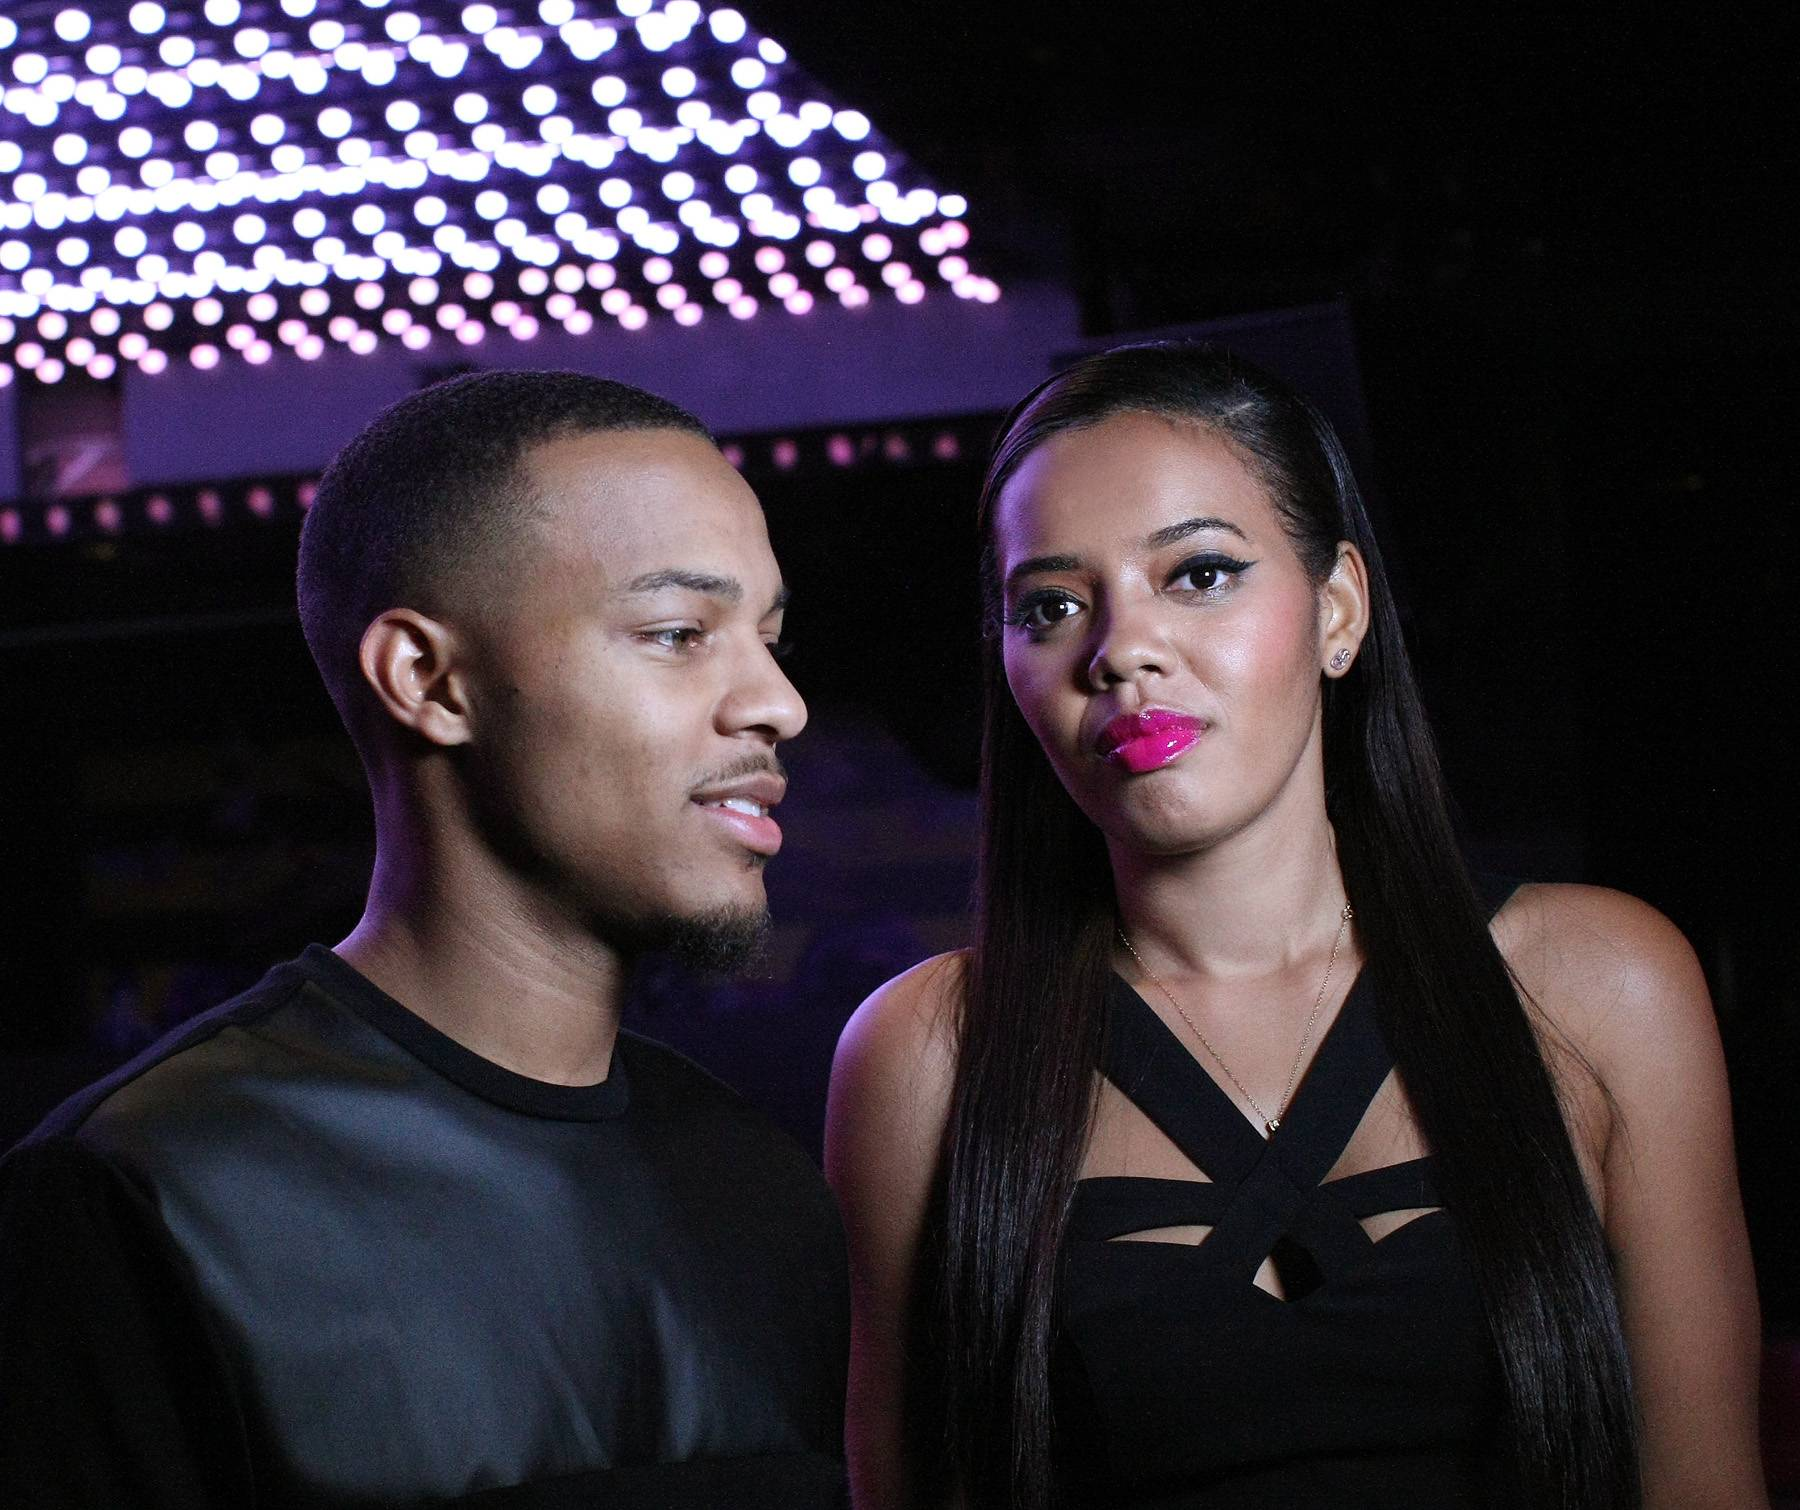 BFFs - Hosts Angela Simmons and Bow Wow share a candid moment while backstage.(Photo: Bennett Raglin/BET/Getty Images for BET)